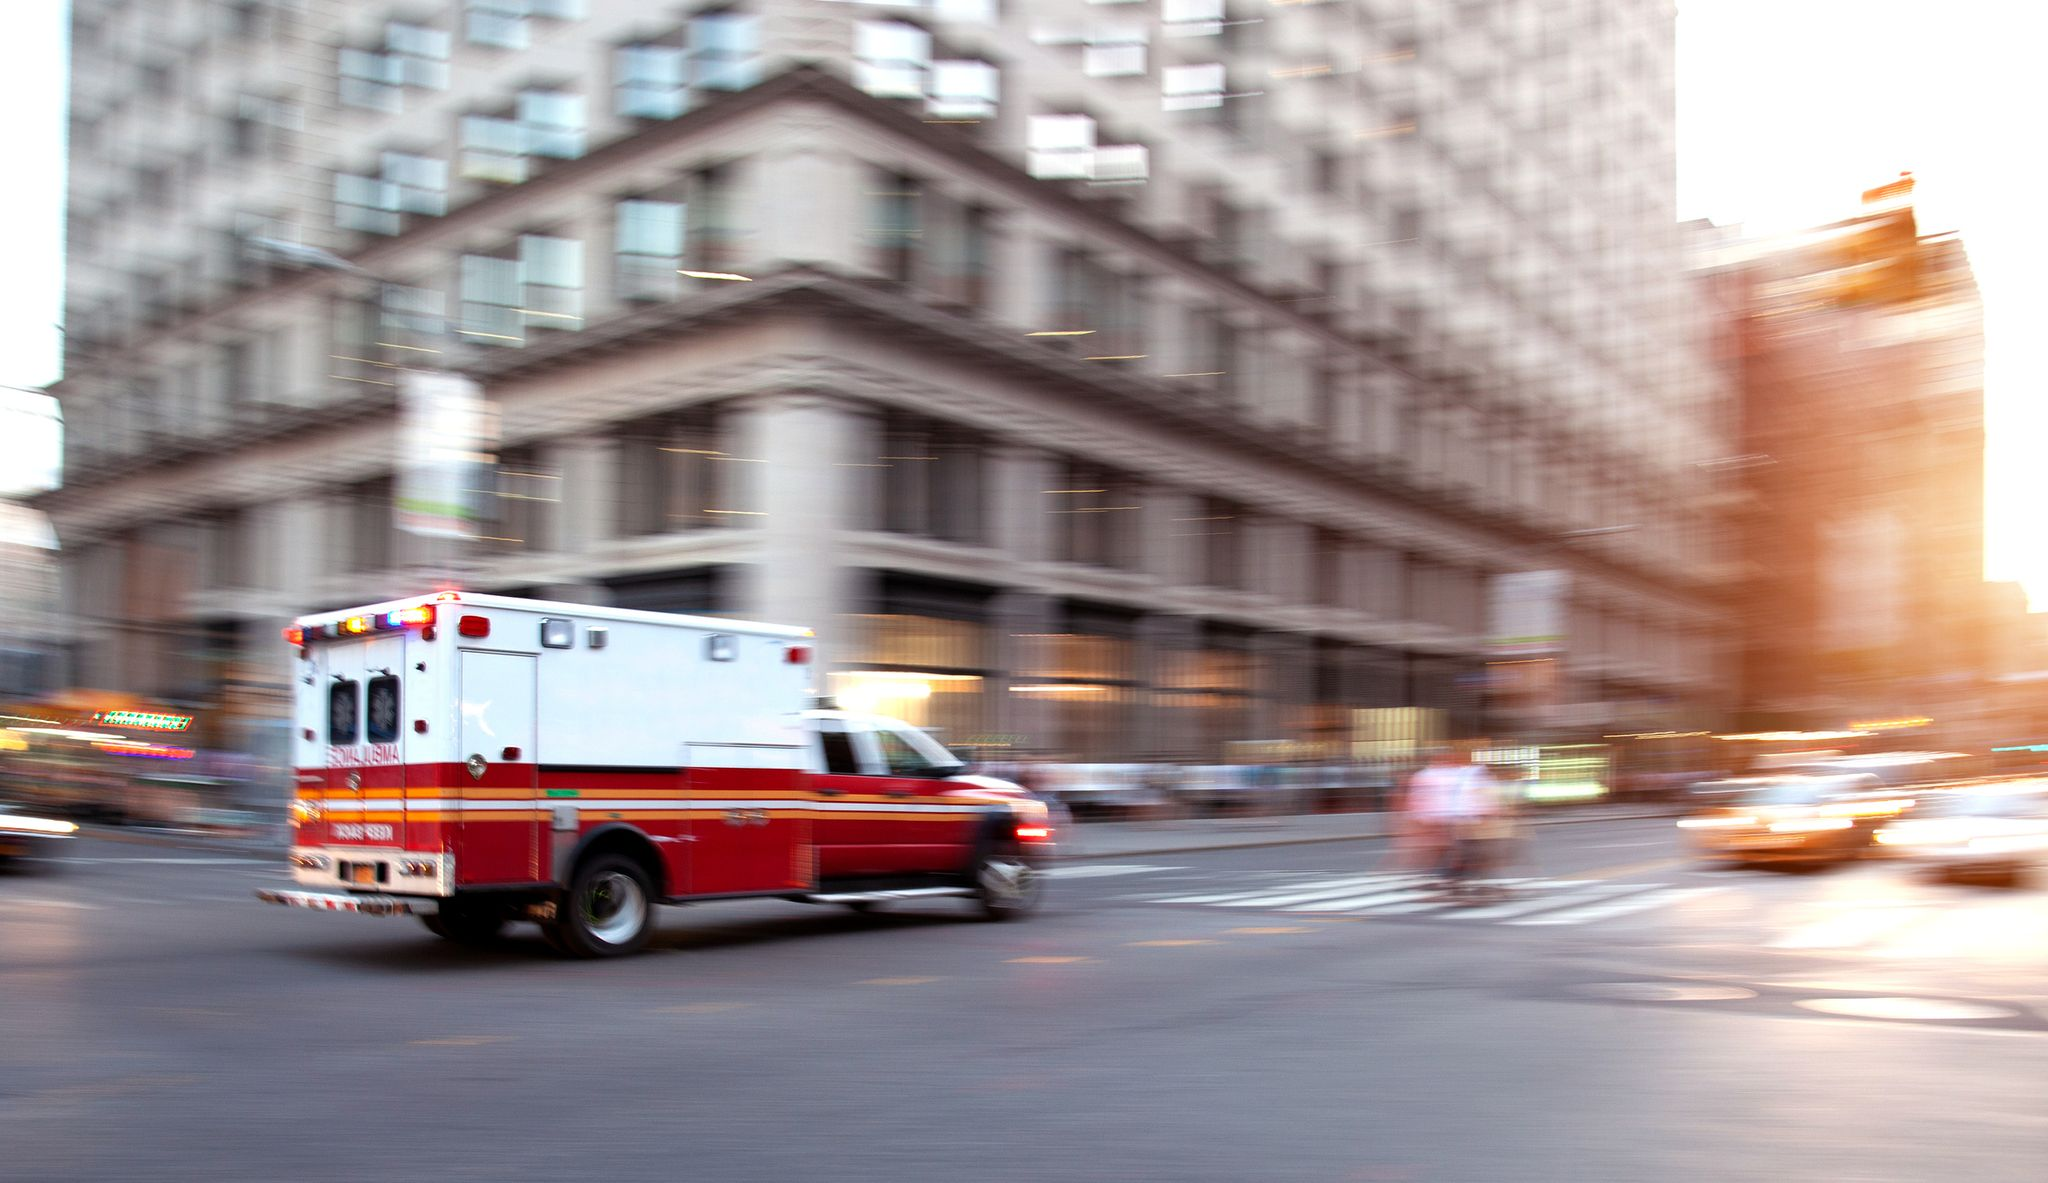 Ambulance responding to an emergency | Photo: Getty Images